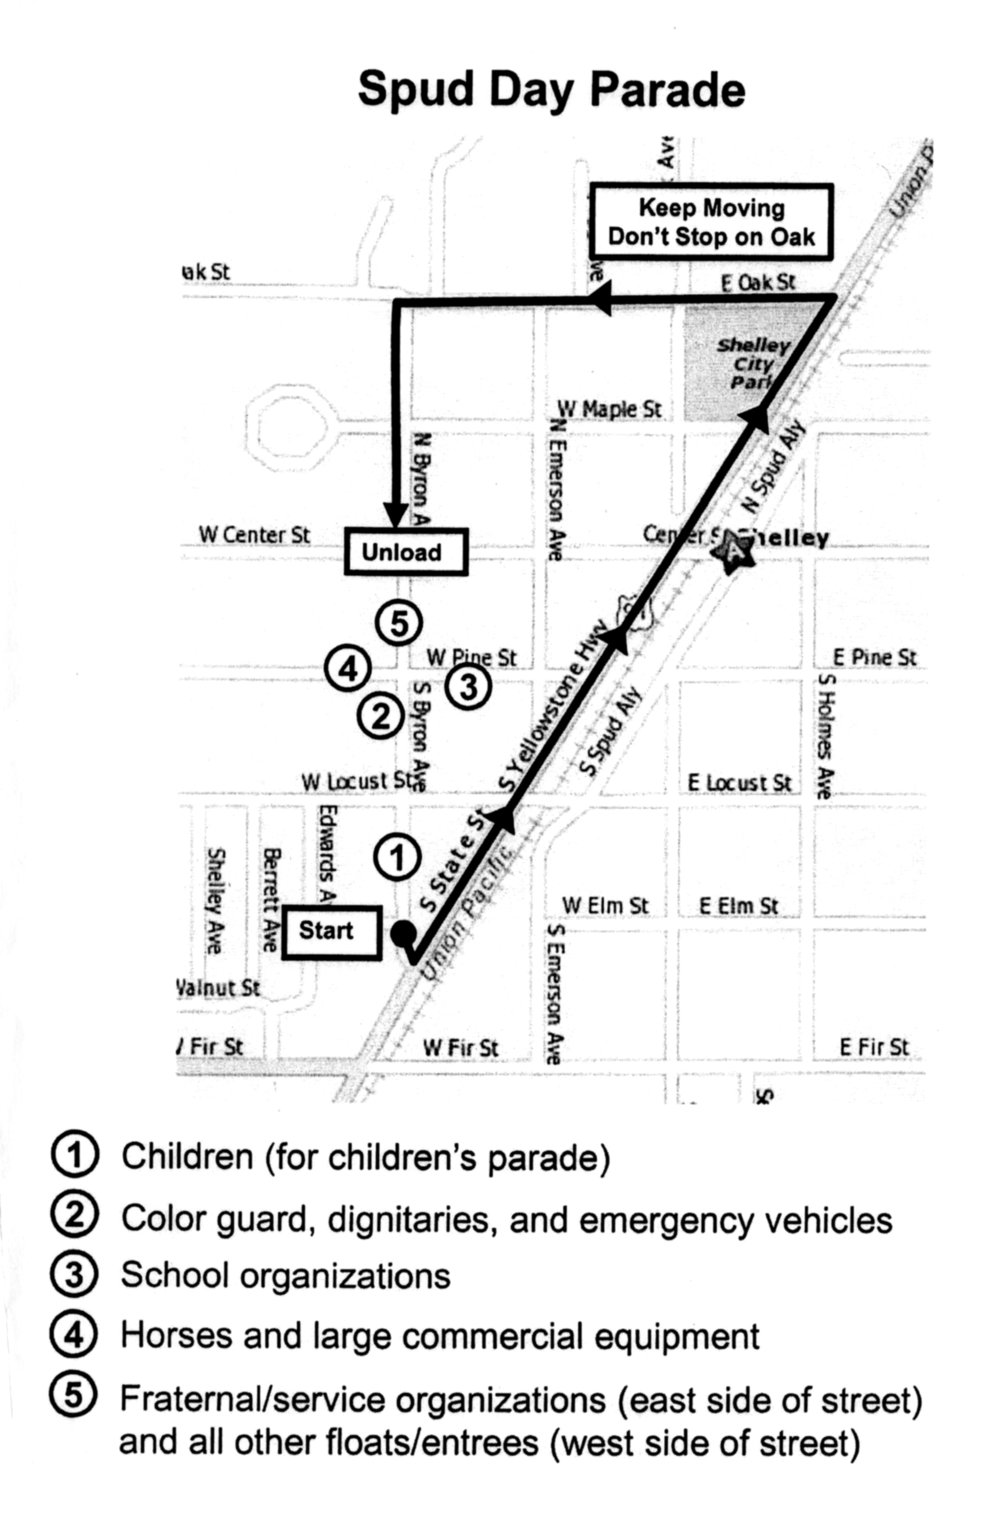 Spud Day Parade Map.jpg